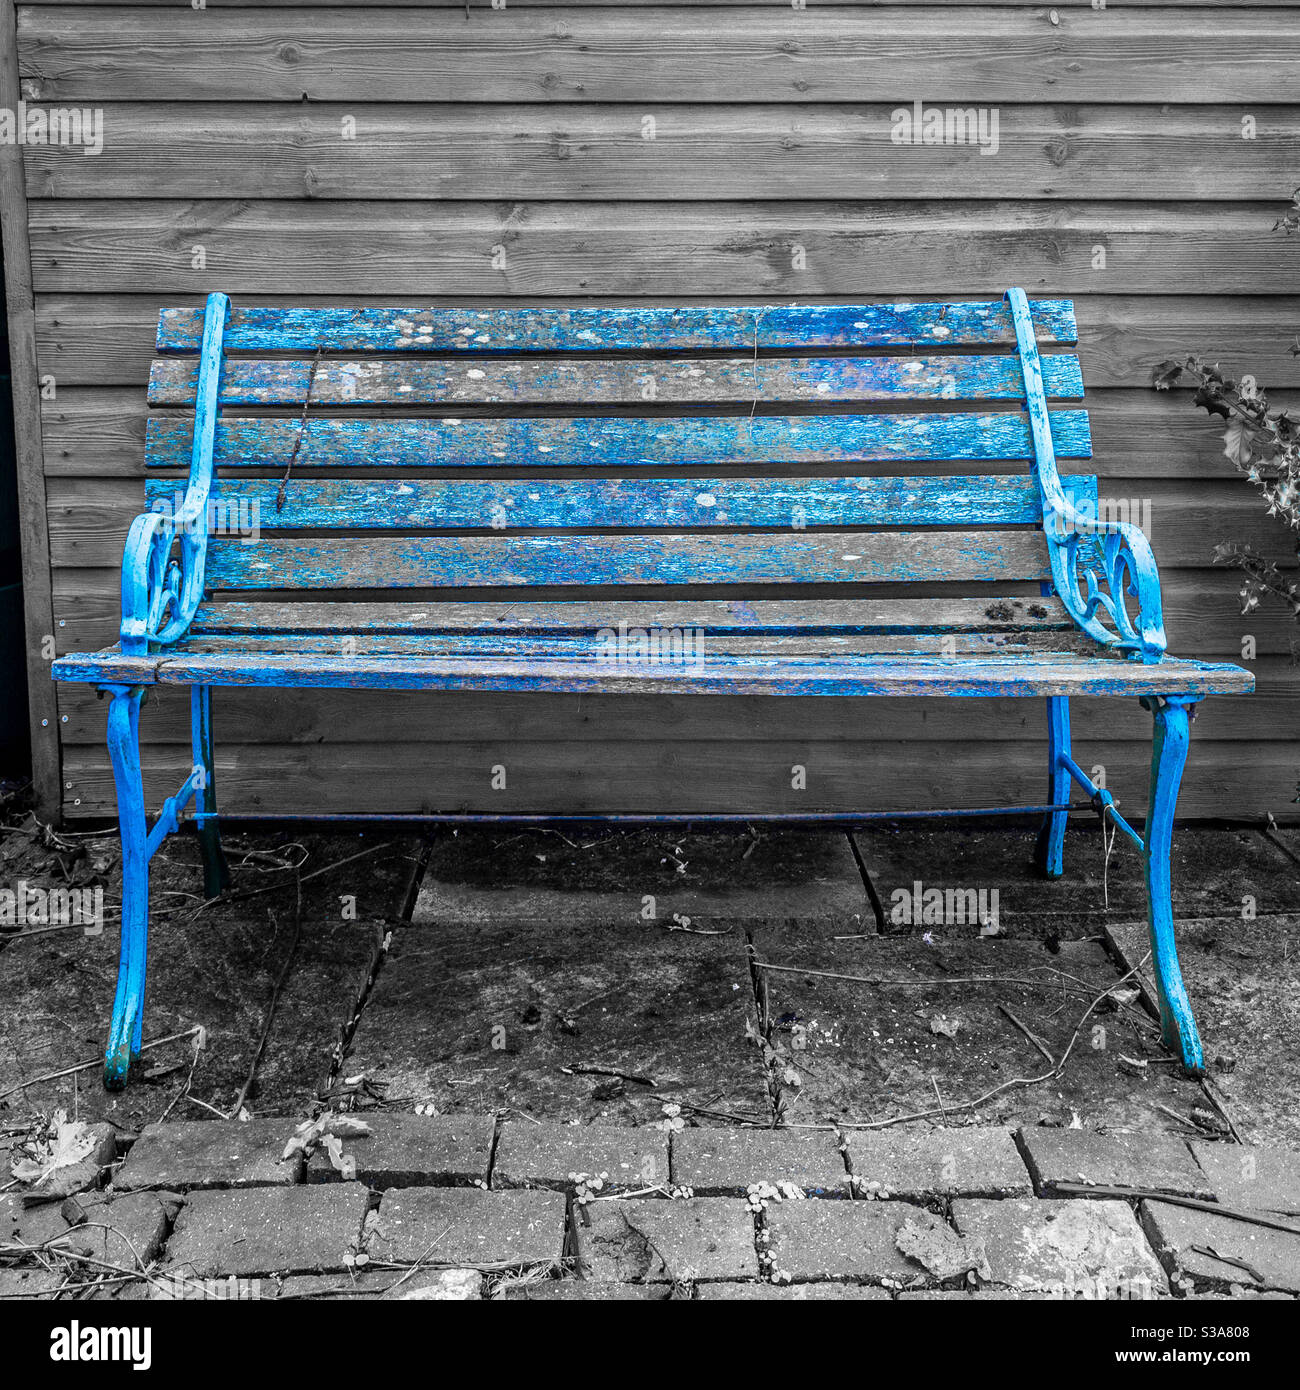 Picture of: Old Wood And Cast Iron Garden Bench With Flaking Blue Paint Alongside Shed Stock Photo Alamy